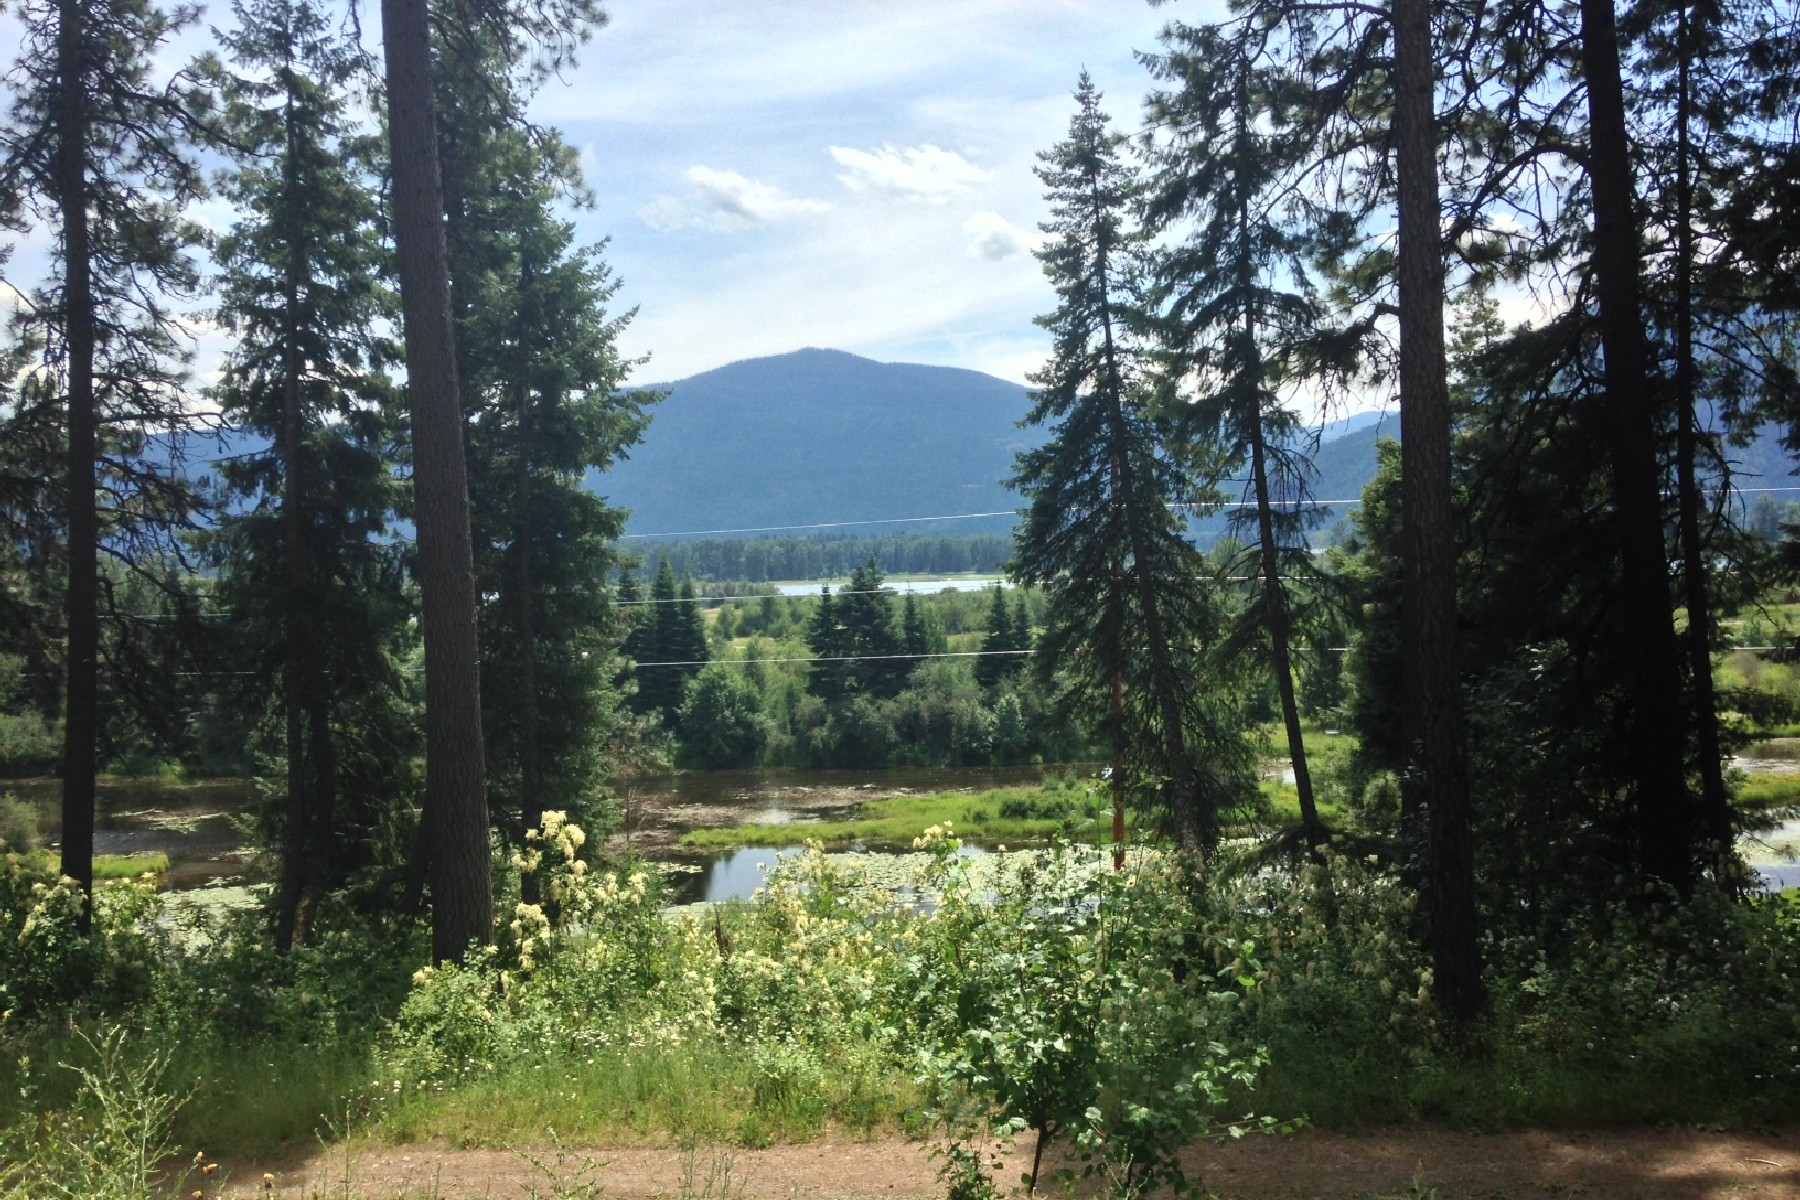 Земля для того Продажа на Sweeping Views of Clark Fork River 52331 Hwy 200 Clark Fork, Айдахо, 83811 Соединенные Штаты